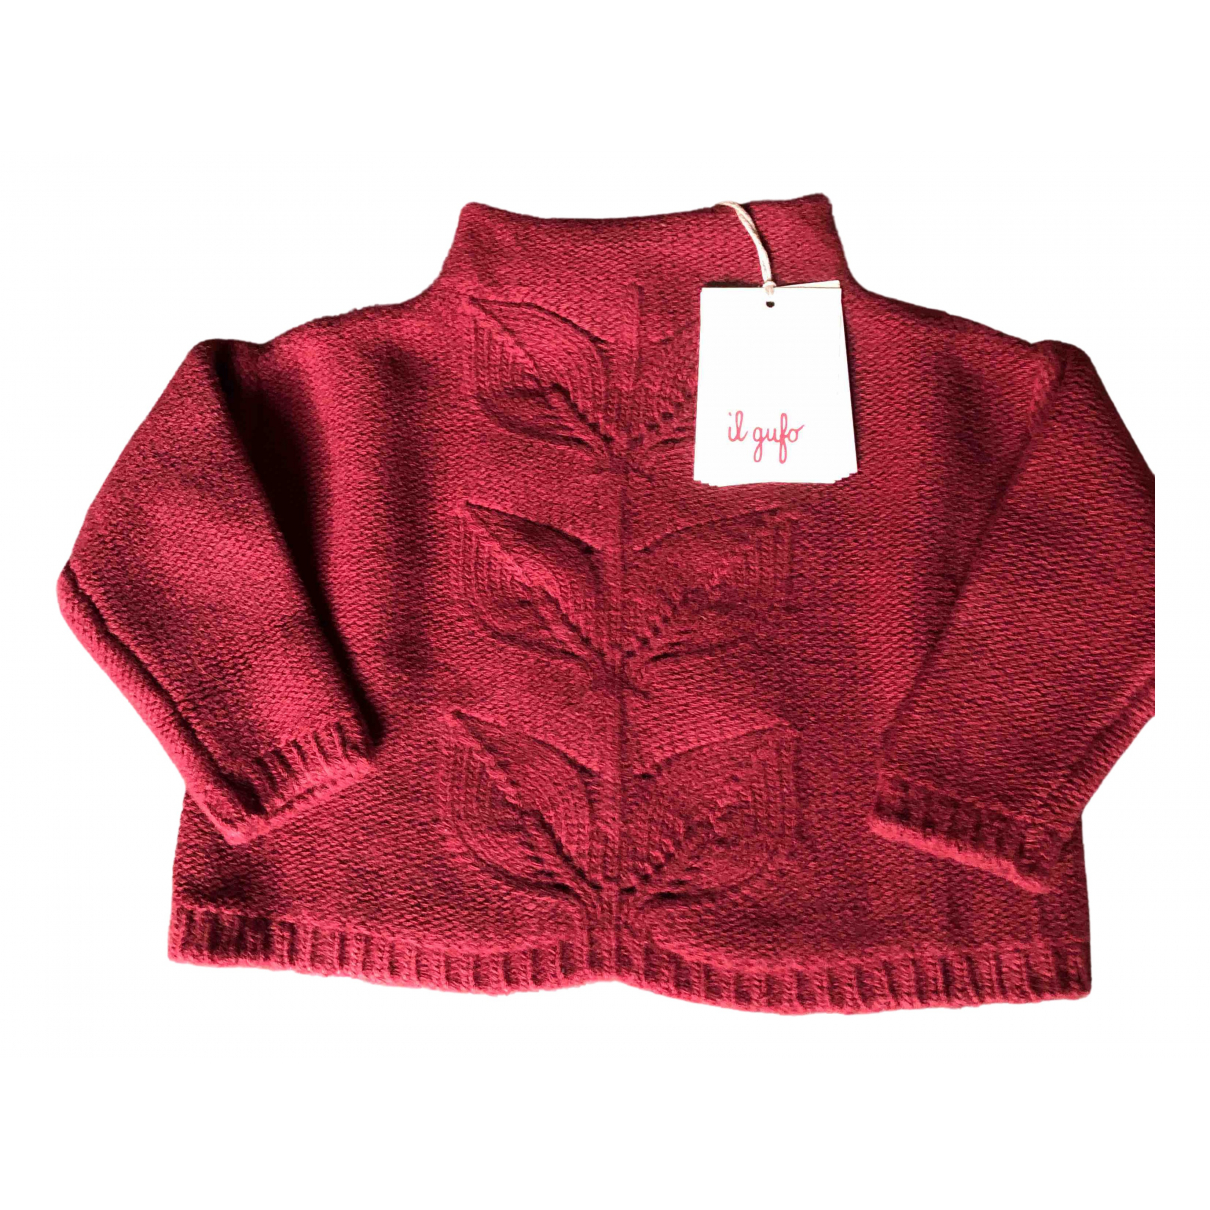 Il Gufo N Burgundy Wool Knitwear for Kids 2 years - until 34 inches UK